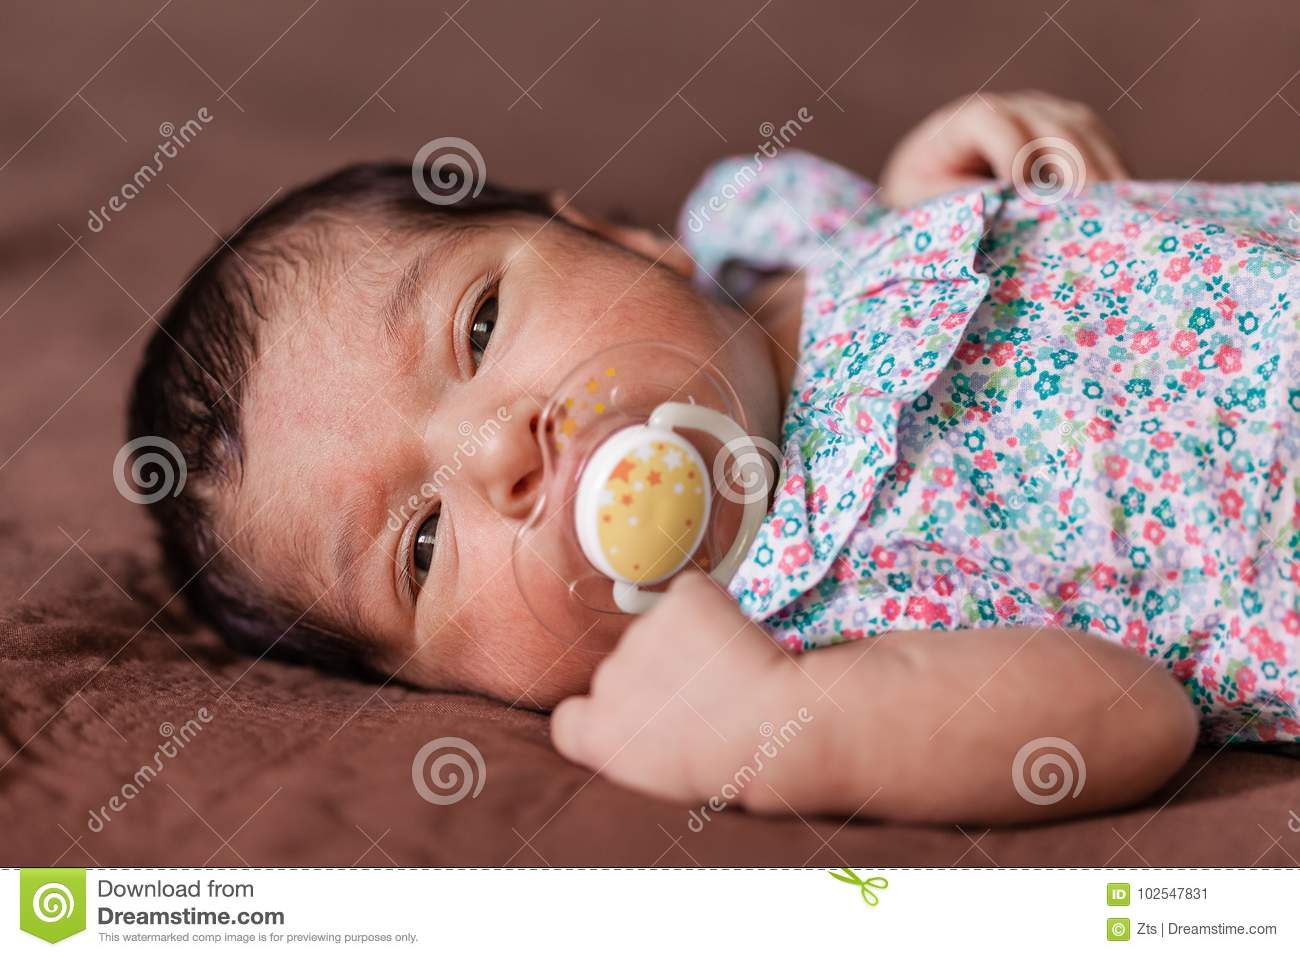 Newborn Babies For Dummies Cute Two Weeks Old Newborn Baby Girl With A Pacifier Stock